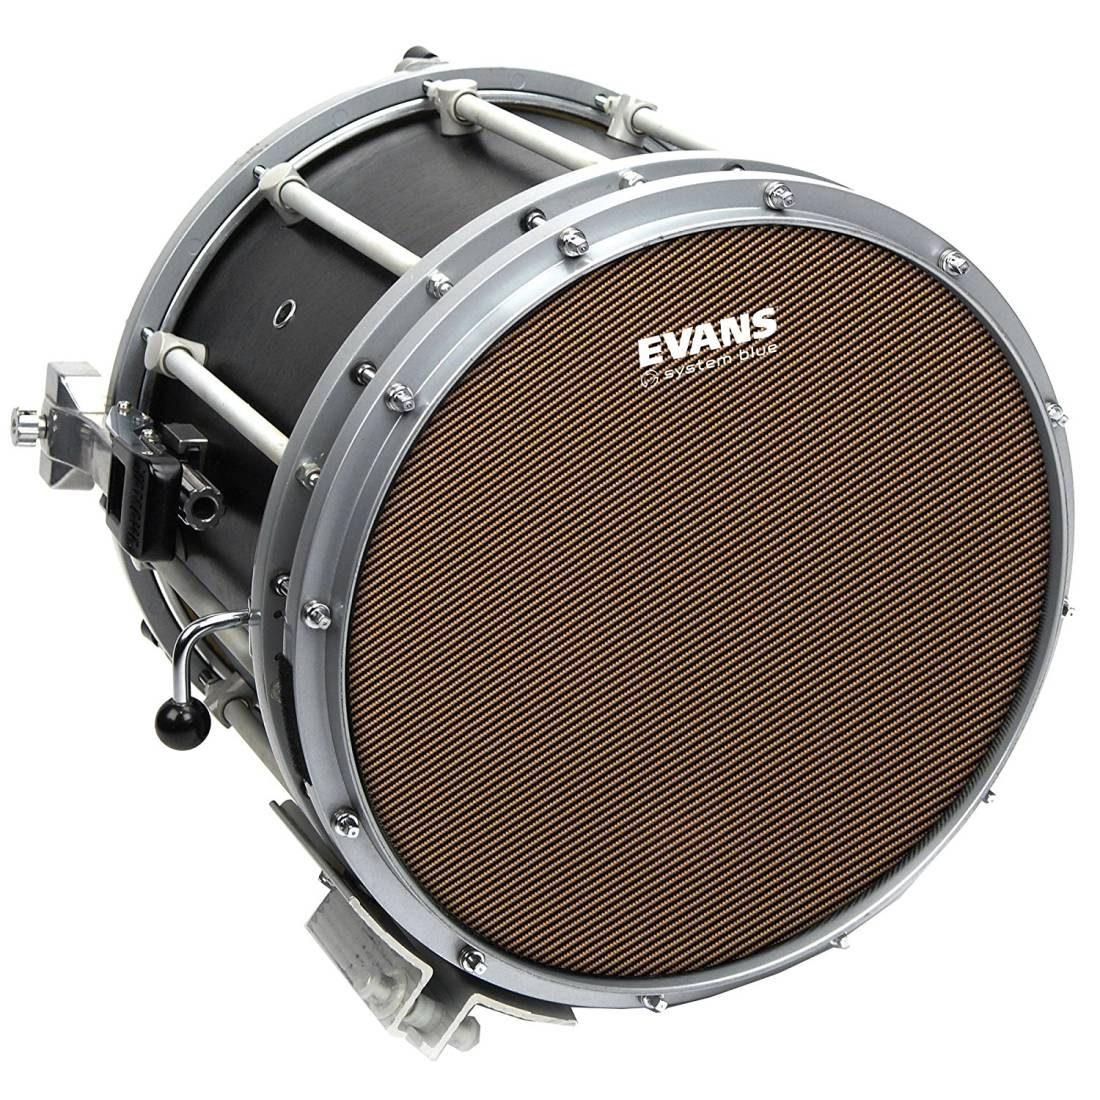 evans system blue marching snare drum head 14 inch long mcquade musical instruments. Black Bedroom Furniture Sets. Home Design Ideas